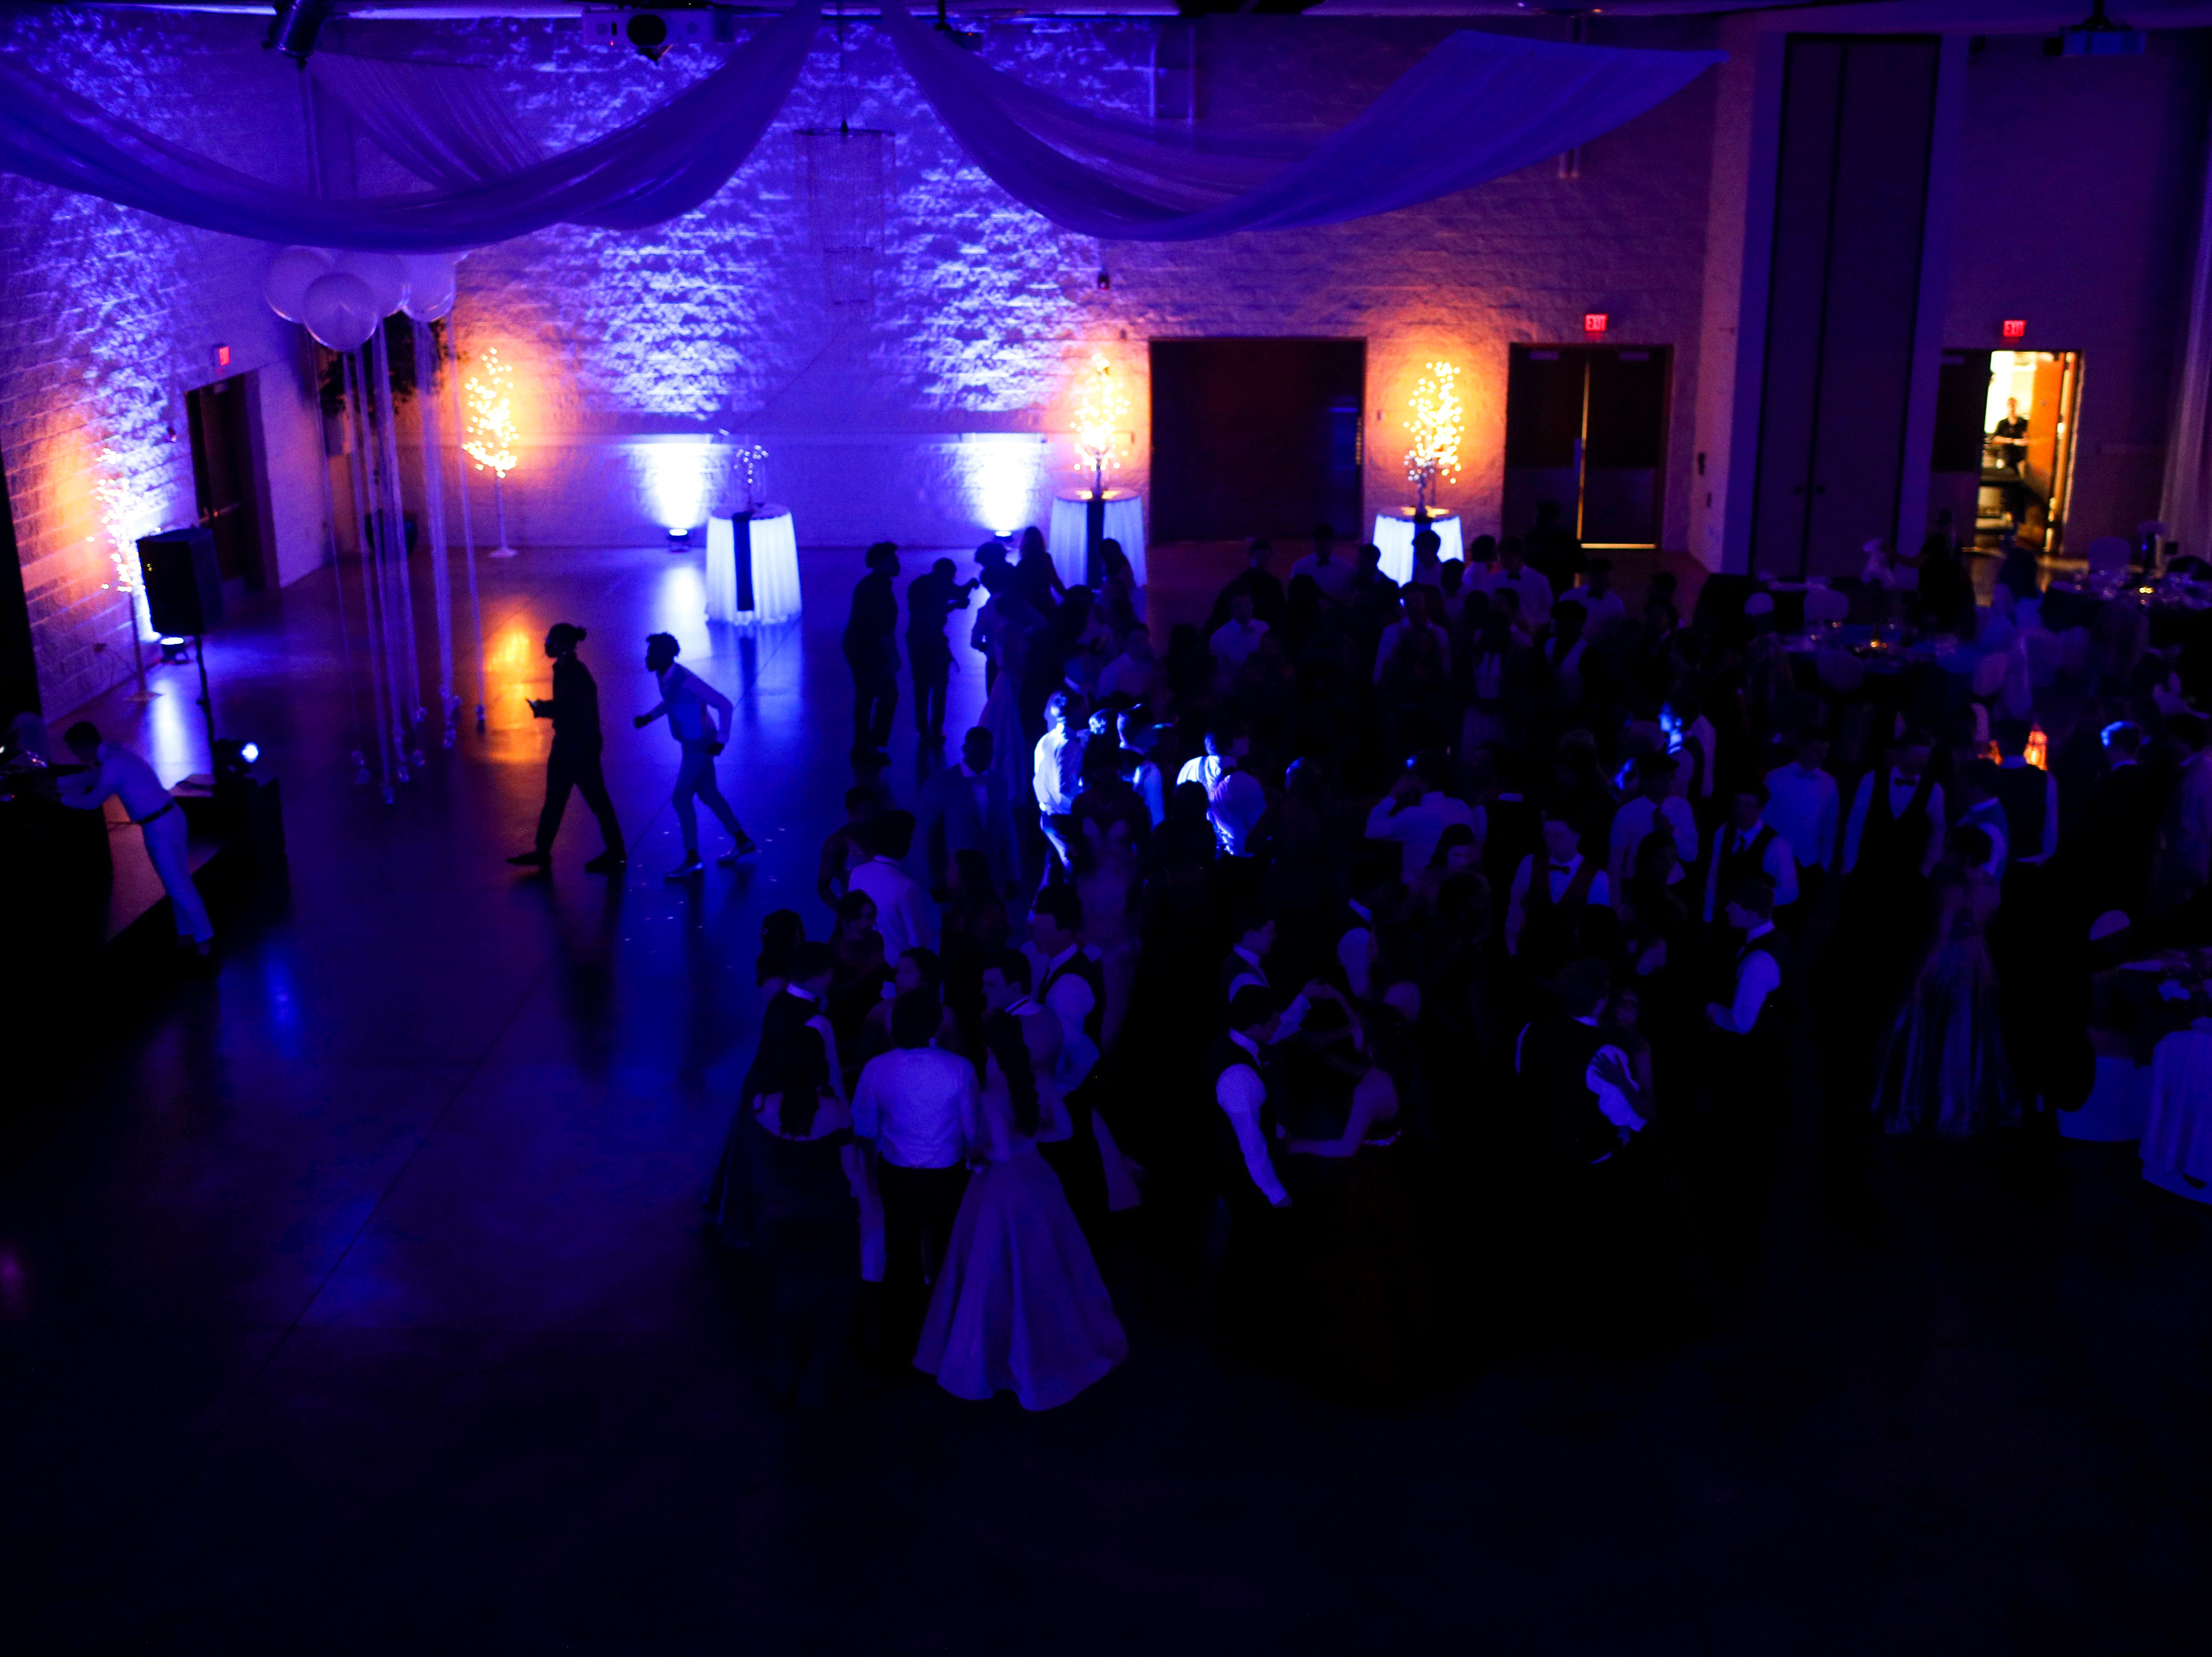 Students gather together in the center of the dance floor to dance during Clarksville Academy's 2019 prom at The Bruce Convention Center in Hopkinsville, Ky., on Saturday, April 6, 2019.